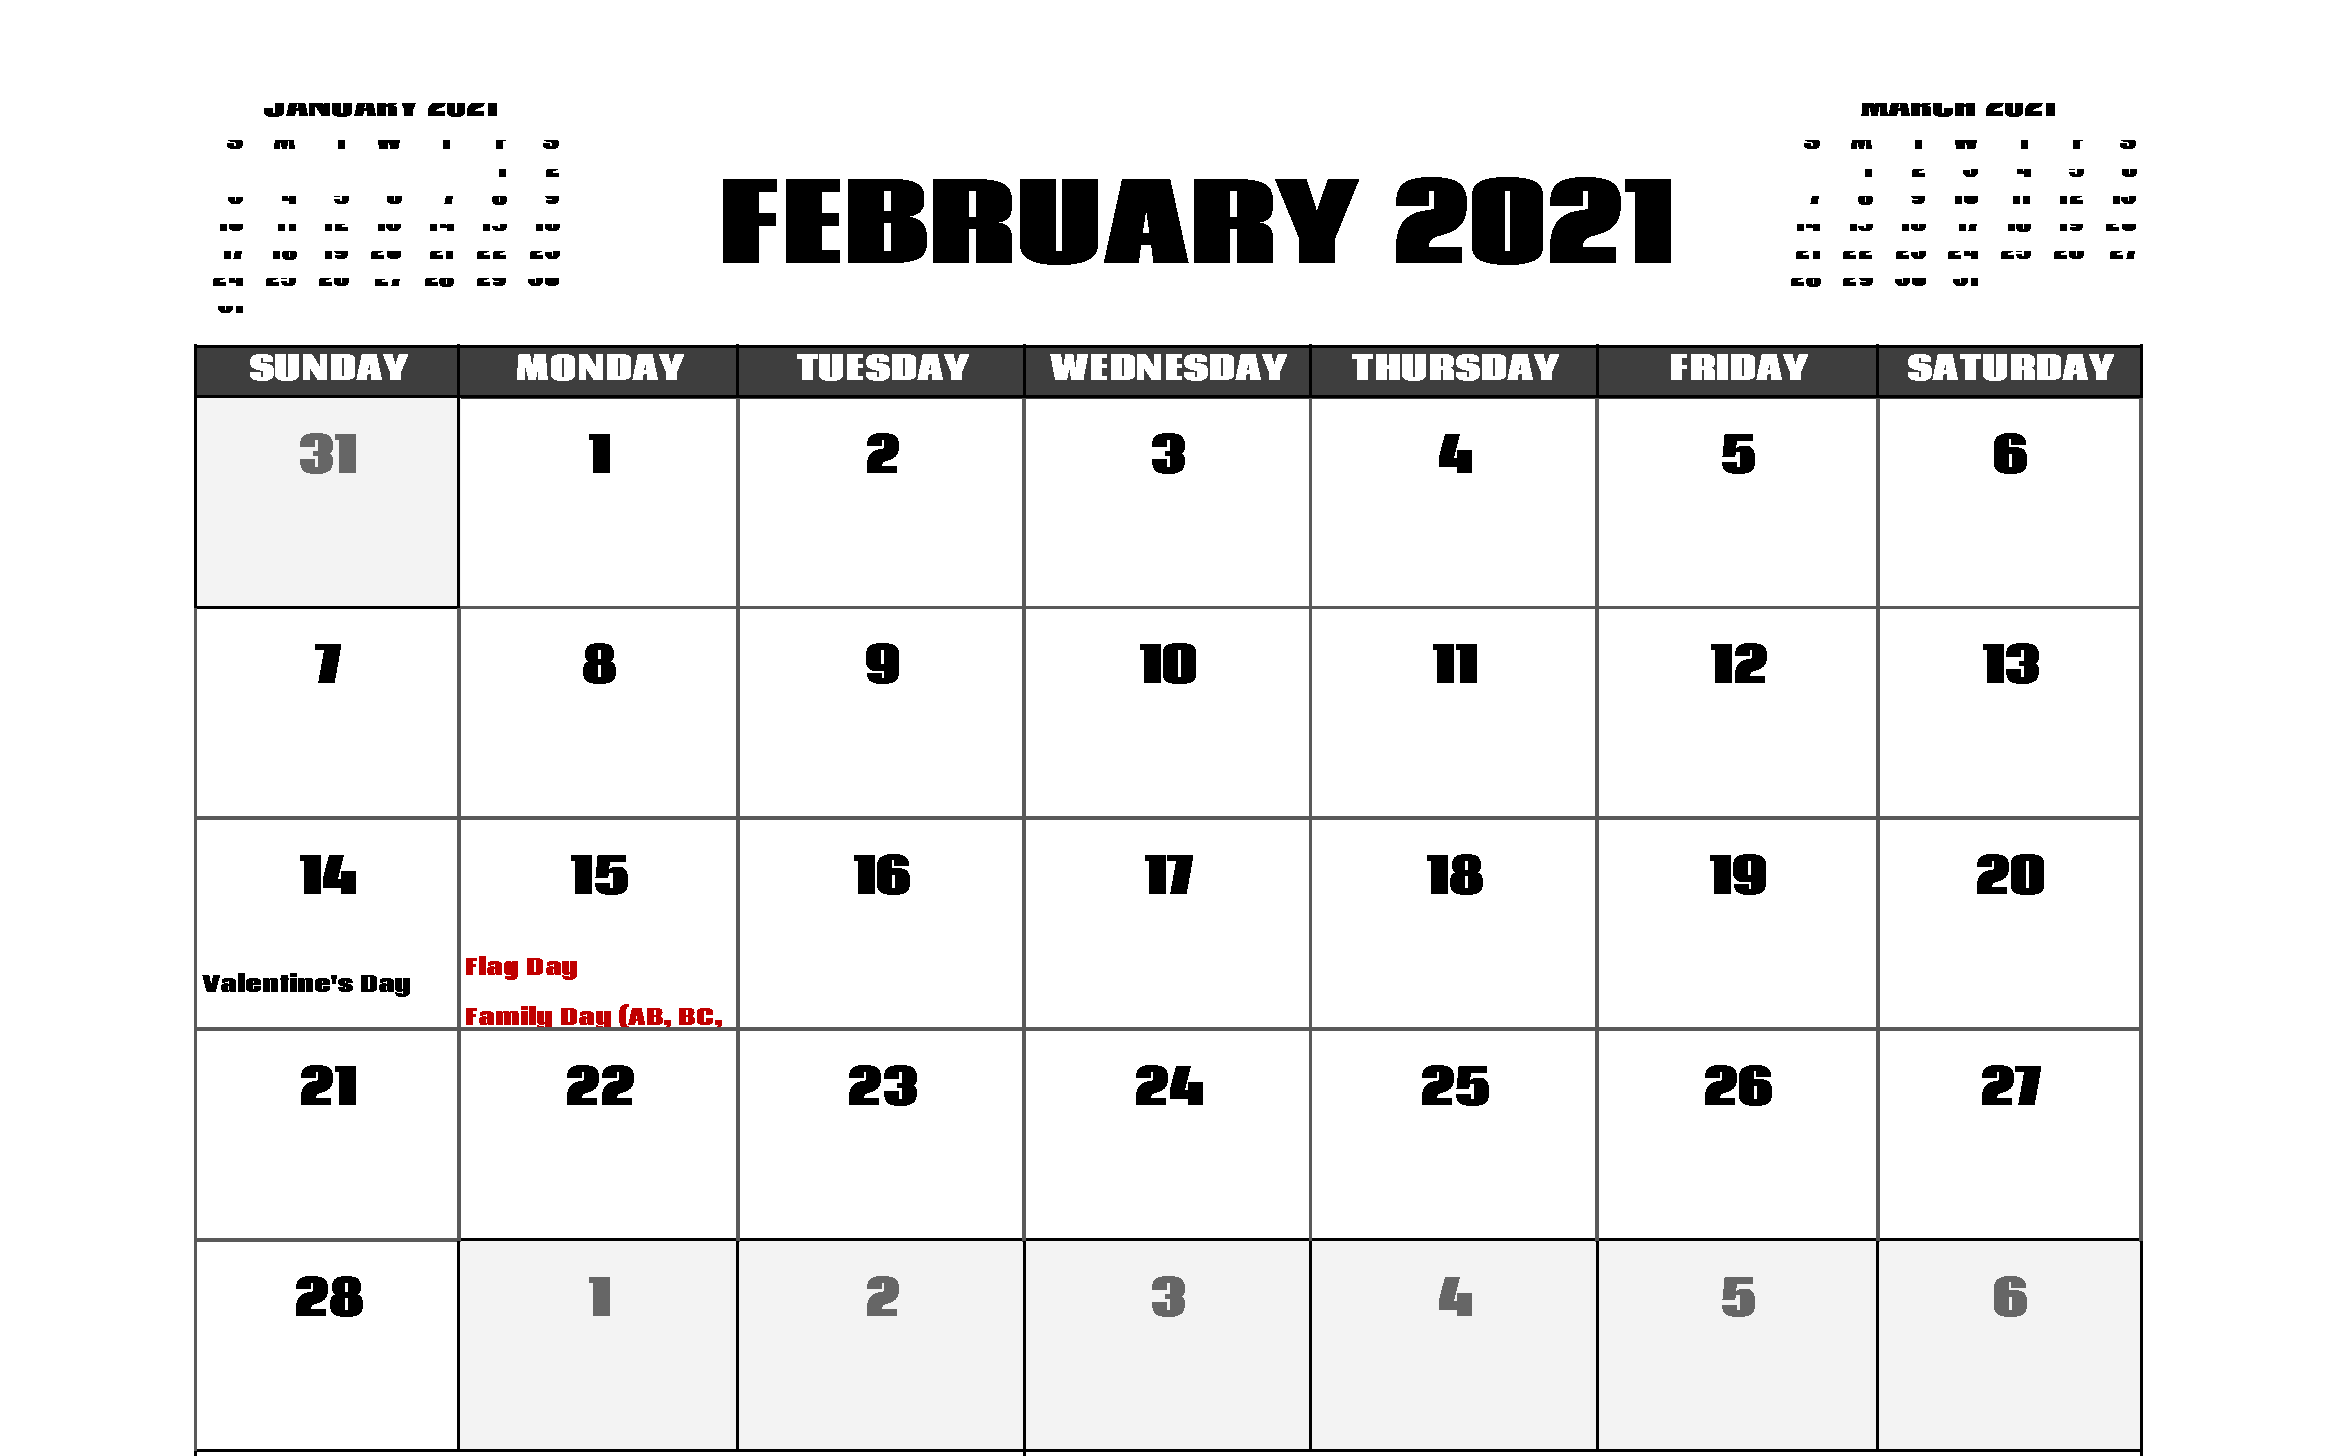 February 2021 Holidays Calendar Template